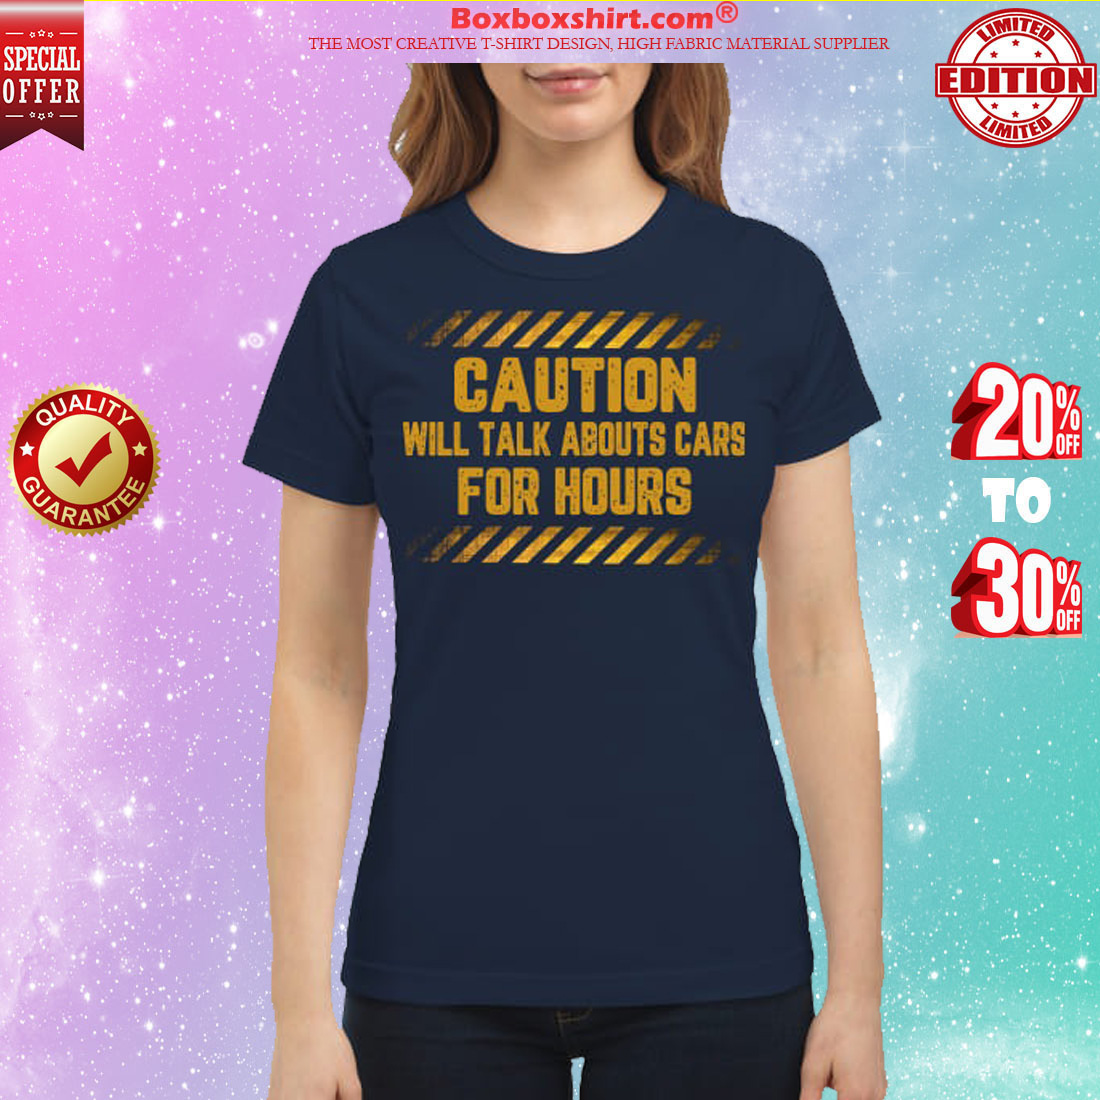 Caution will talk abouts cars for hours classic shirt